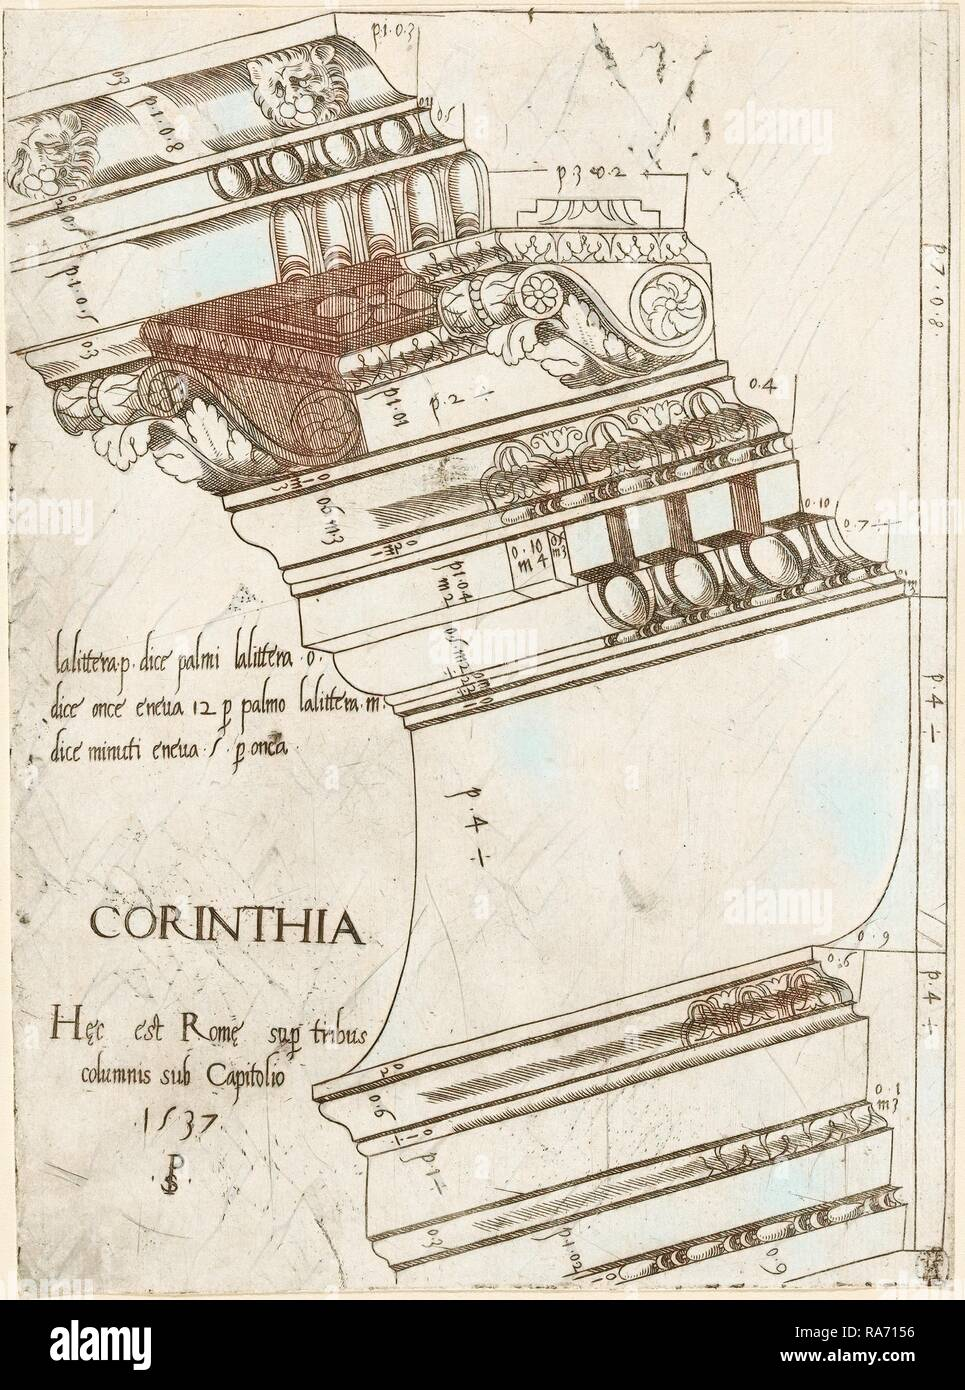 Master PS (Italian (?), active 1535-1537), Entablature from the Temple of Vespasian, Rome, 1537, engraving reimagined - Stock Image